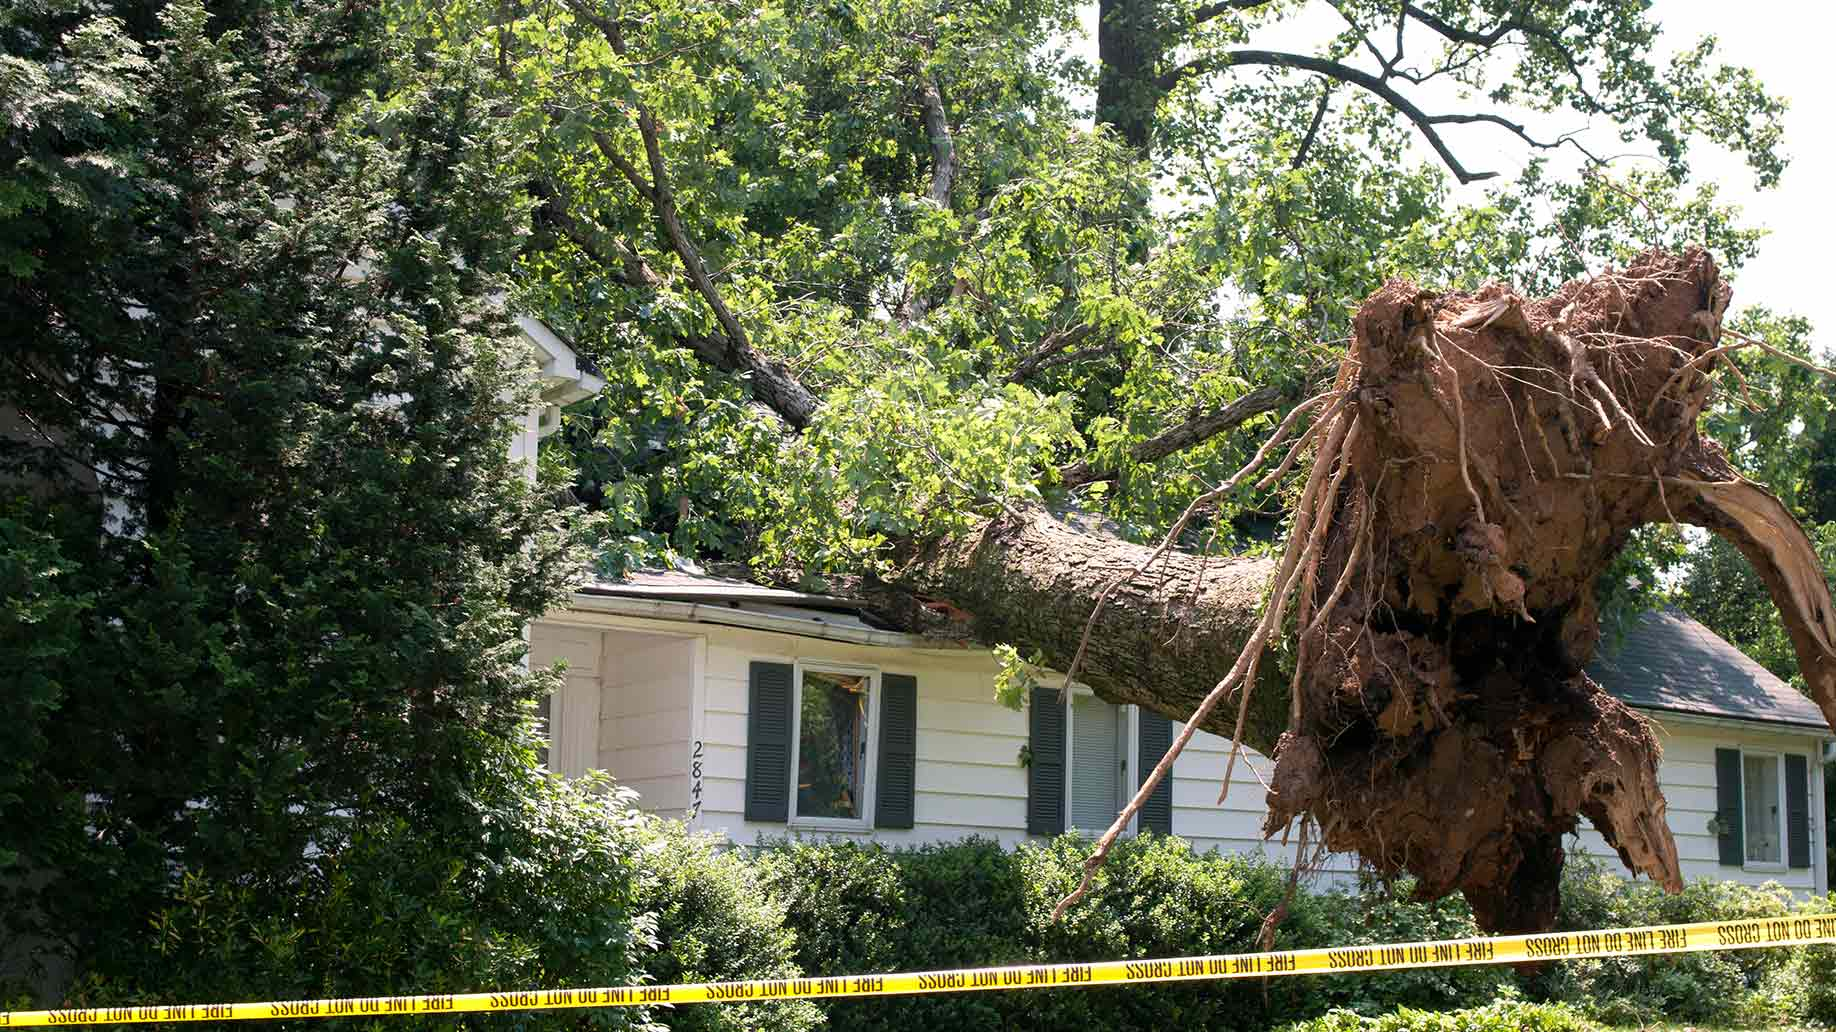 uprooted tree fell on a house after storm